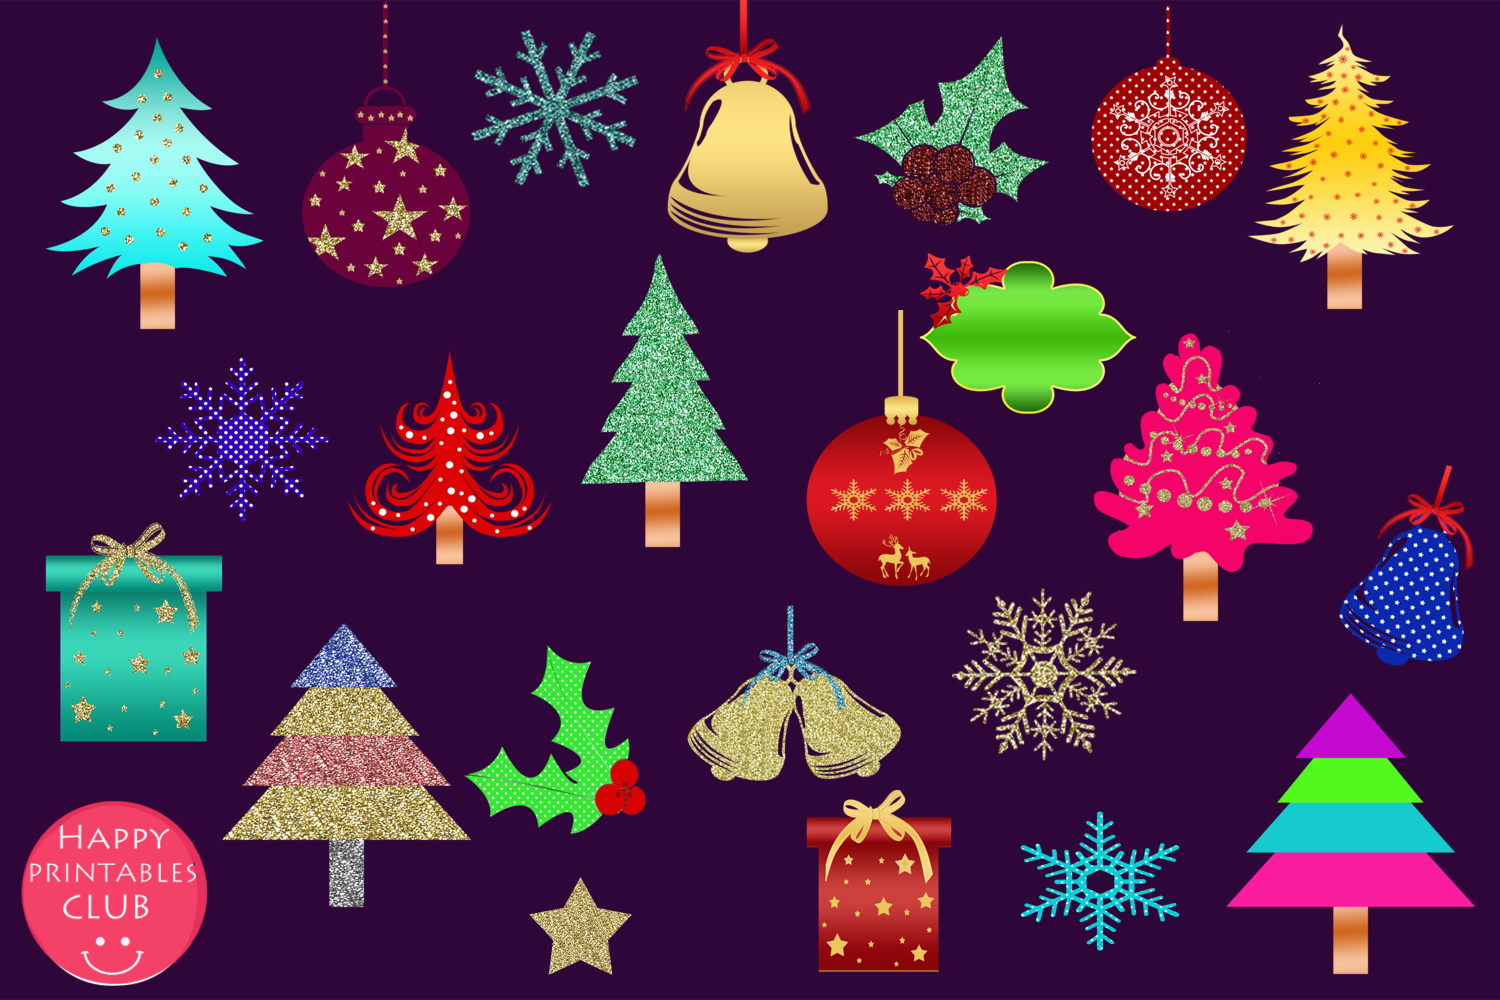 Cute Christmas Clipart- Cute Holiday Graphics Clipart example image 2